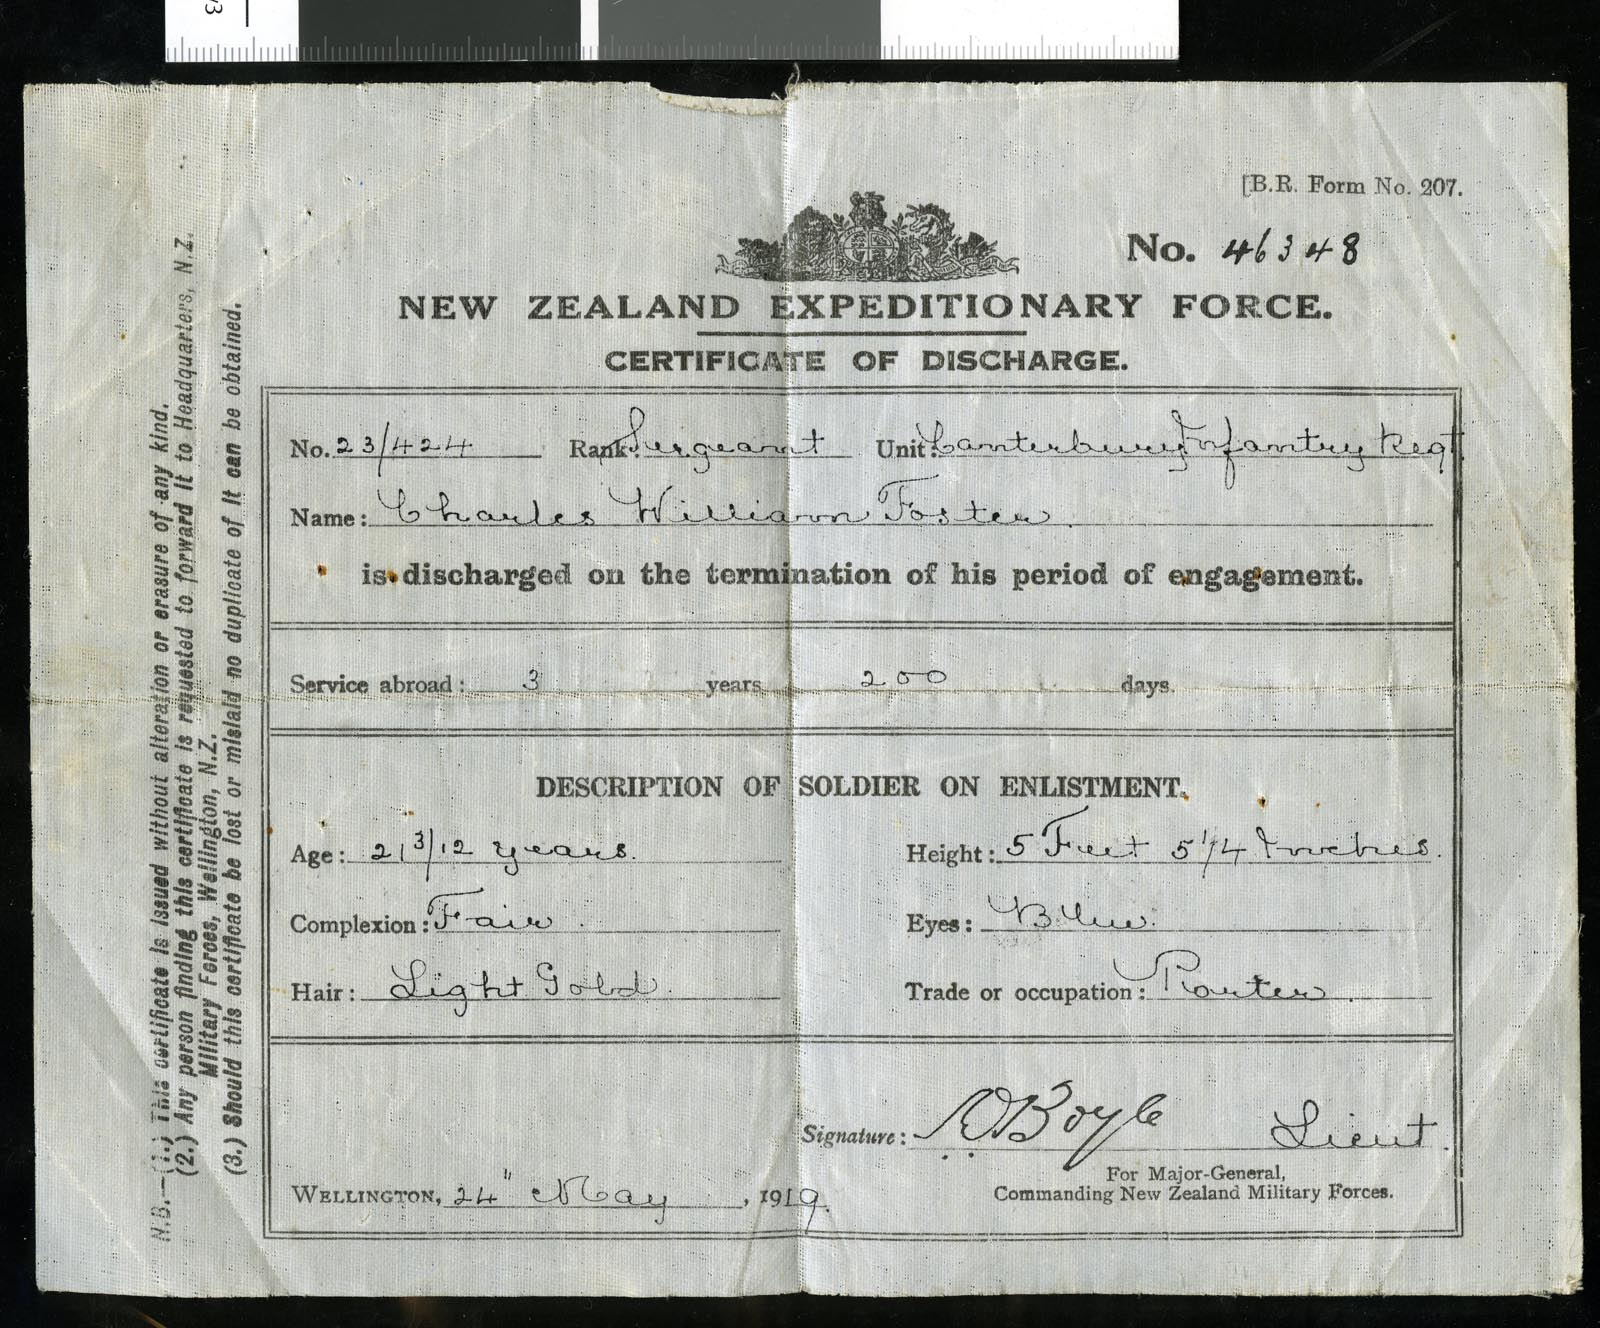 Discharge certificate for Sergeant Charles William Foster, 1919